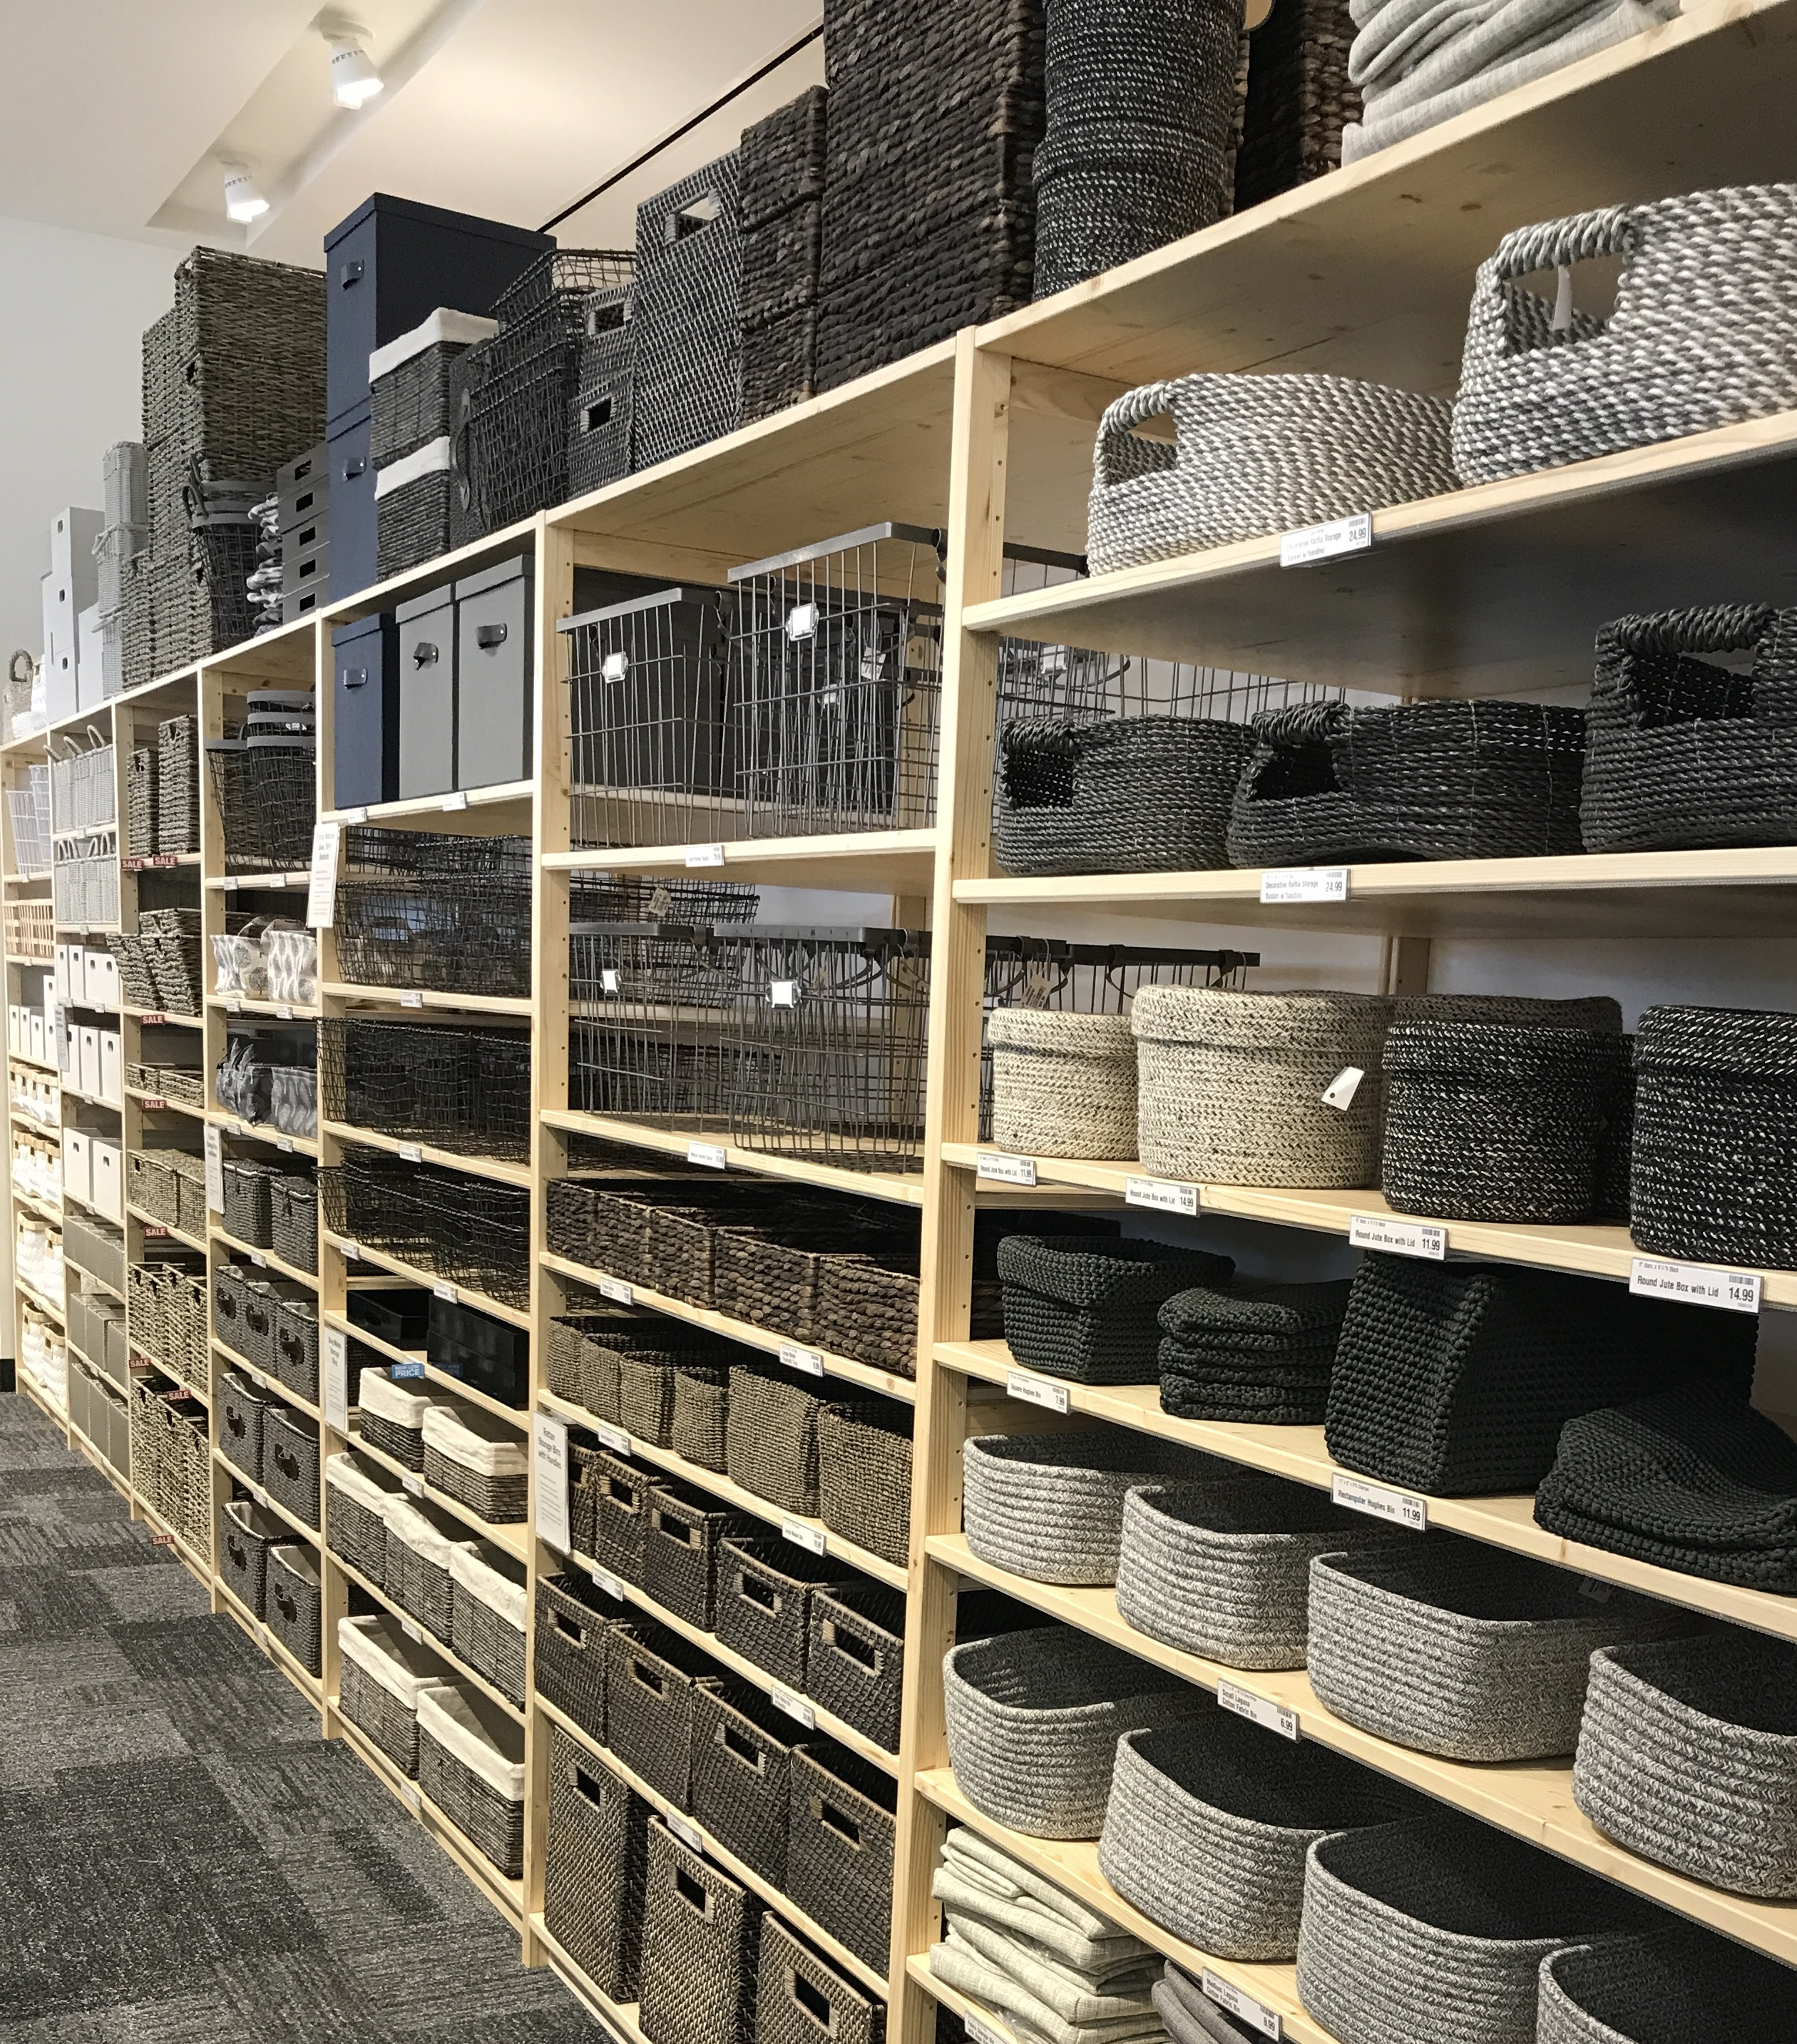 99 Store Near Me >> The Container Store: Mixed feelings + 7 shopping tips ...